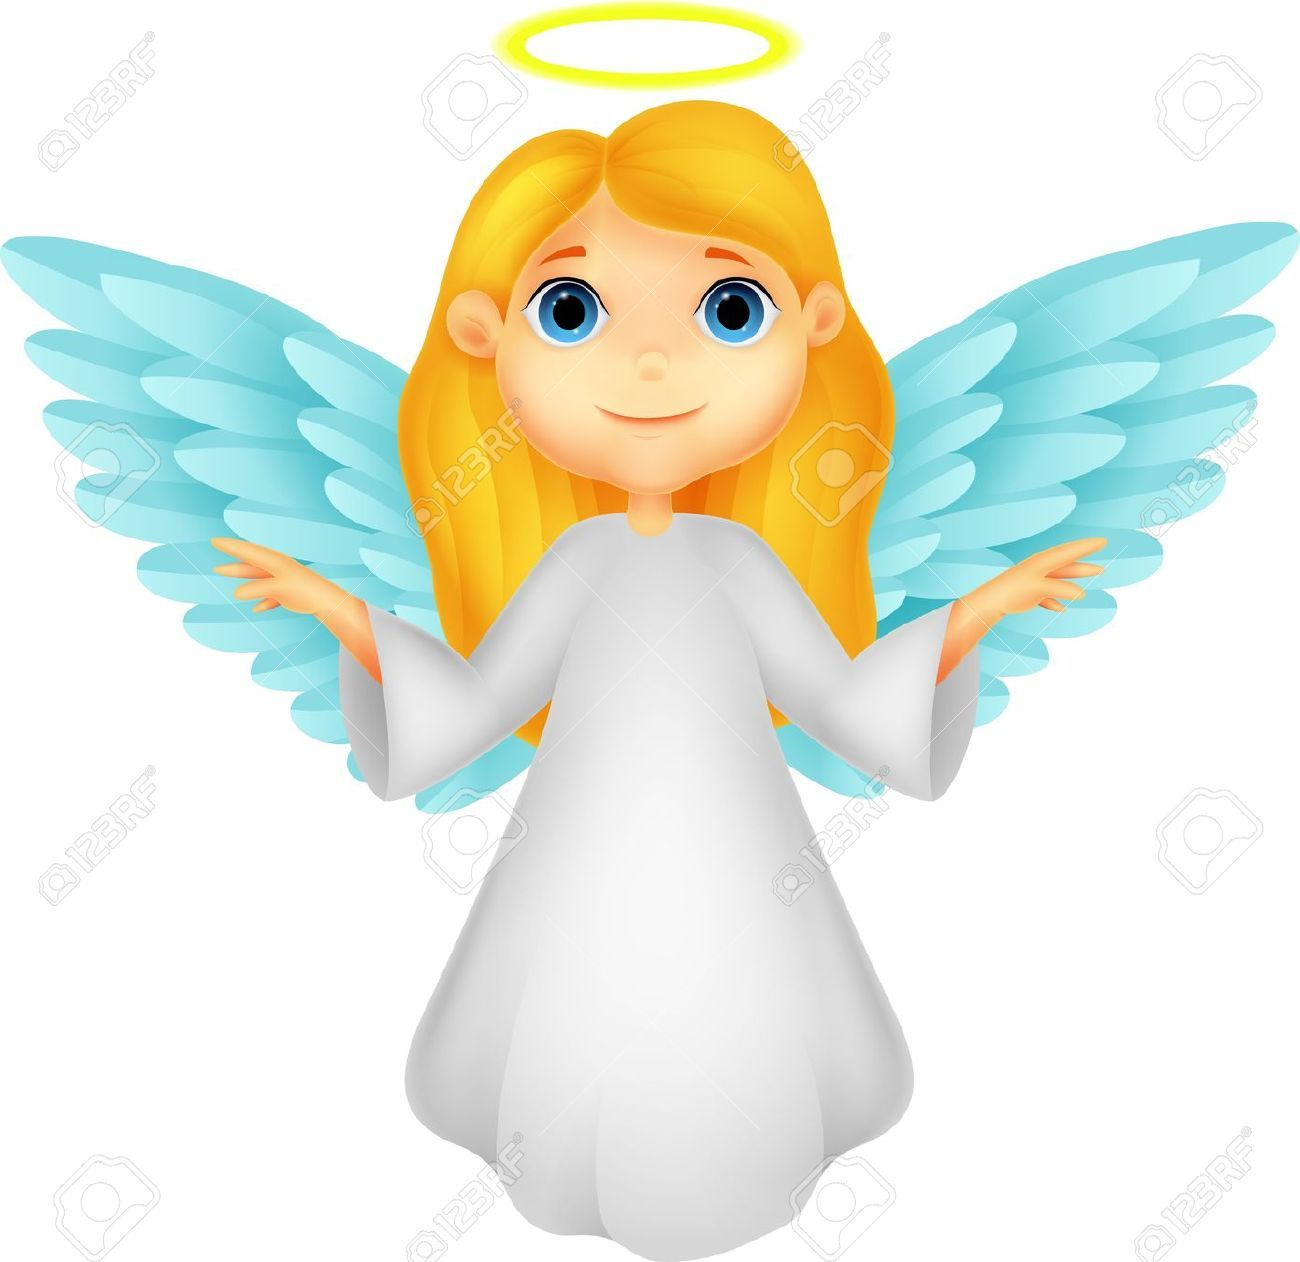 cartoon angels images.